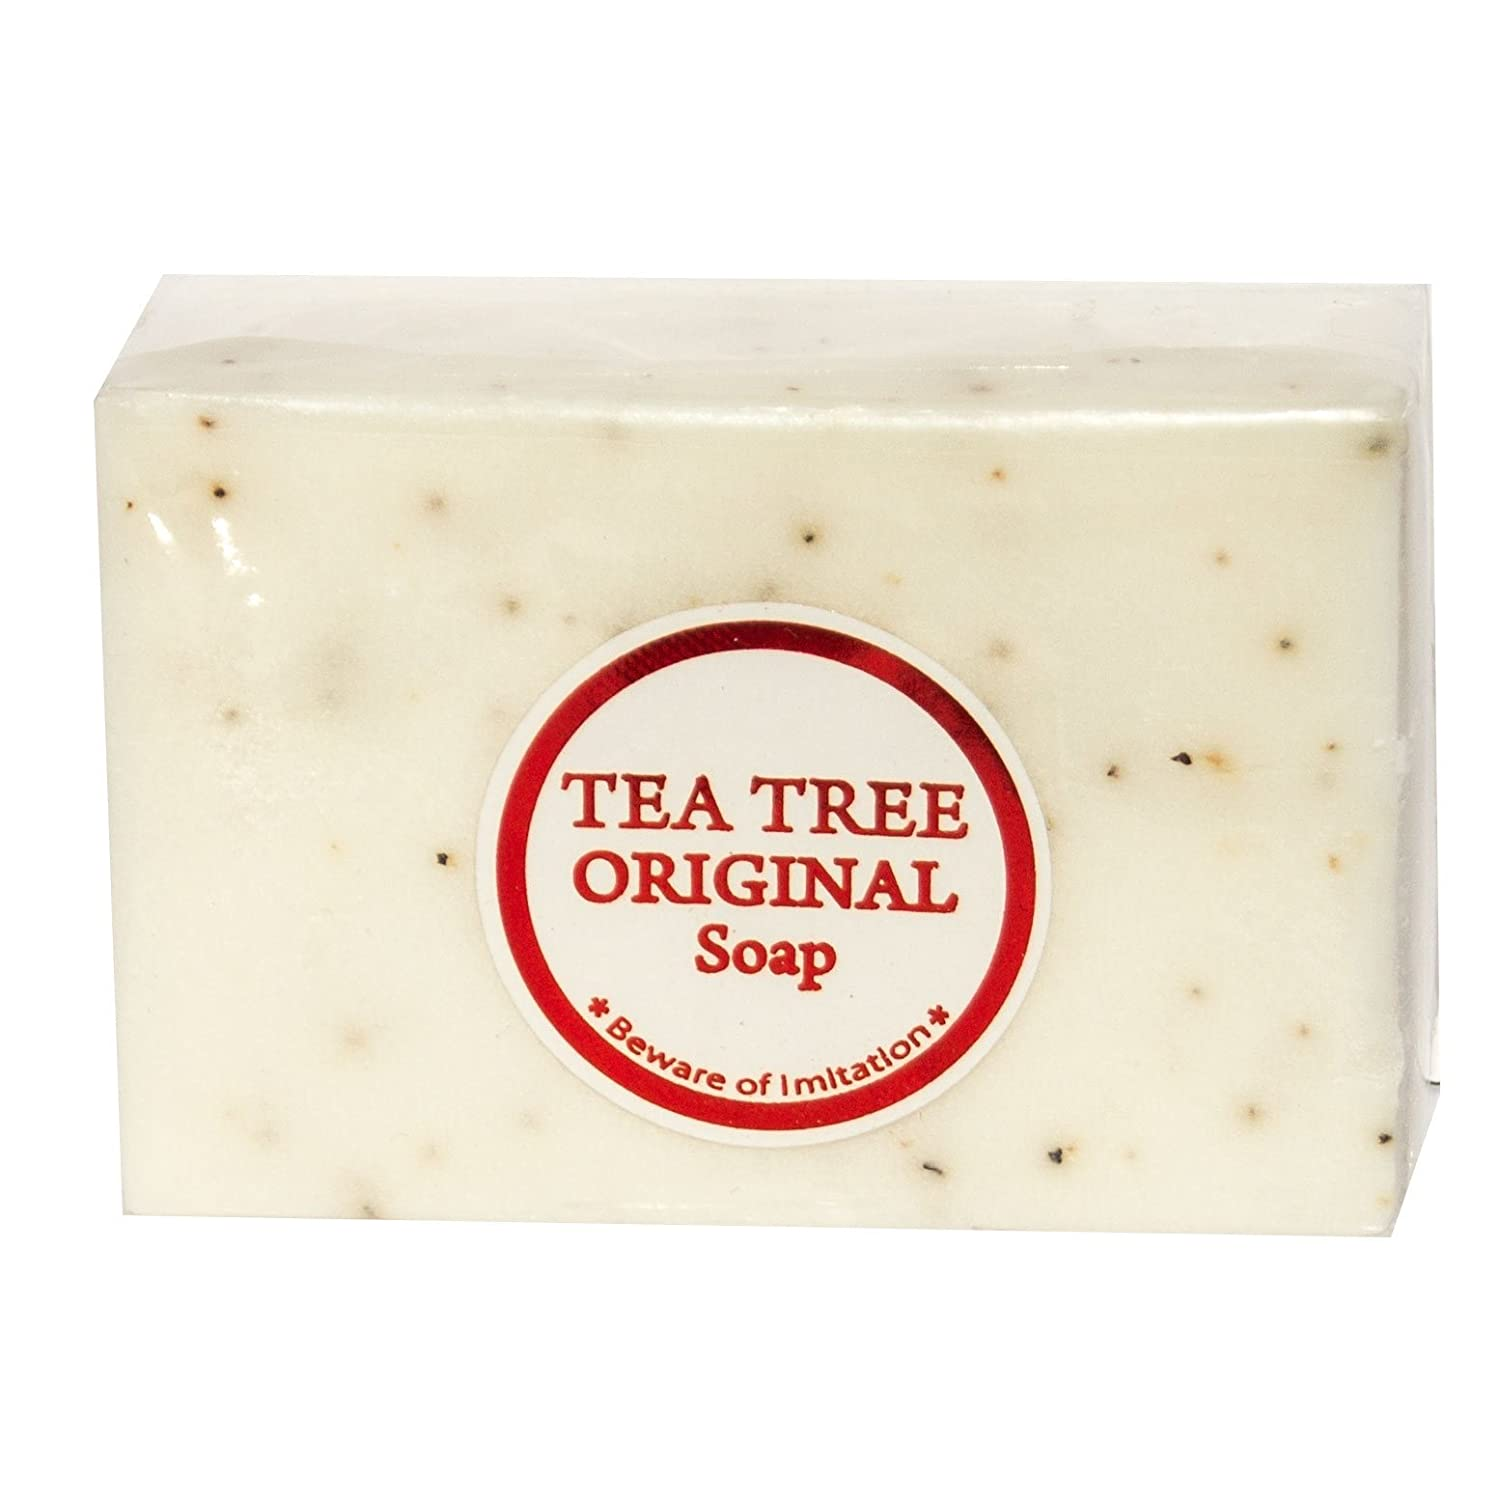 Original Tea Tree Soap - Antiseptic/Whitening Soap Bar for Acne Prone Skin W/ Kojic Acid and Vitamin E Beyond Perfection